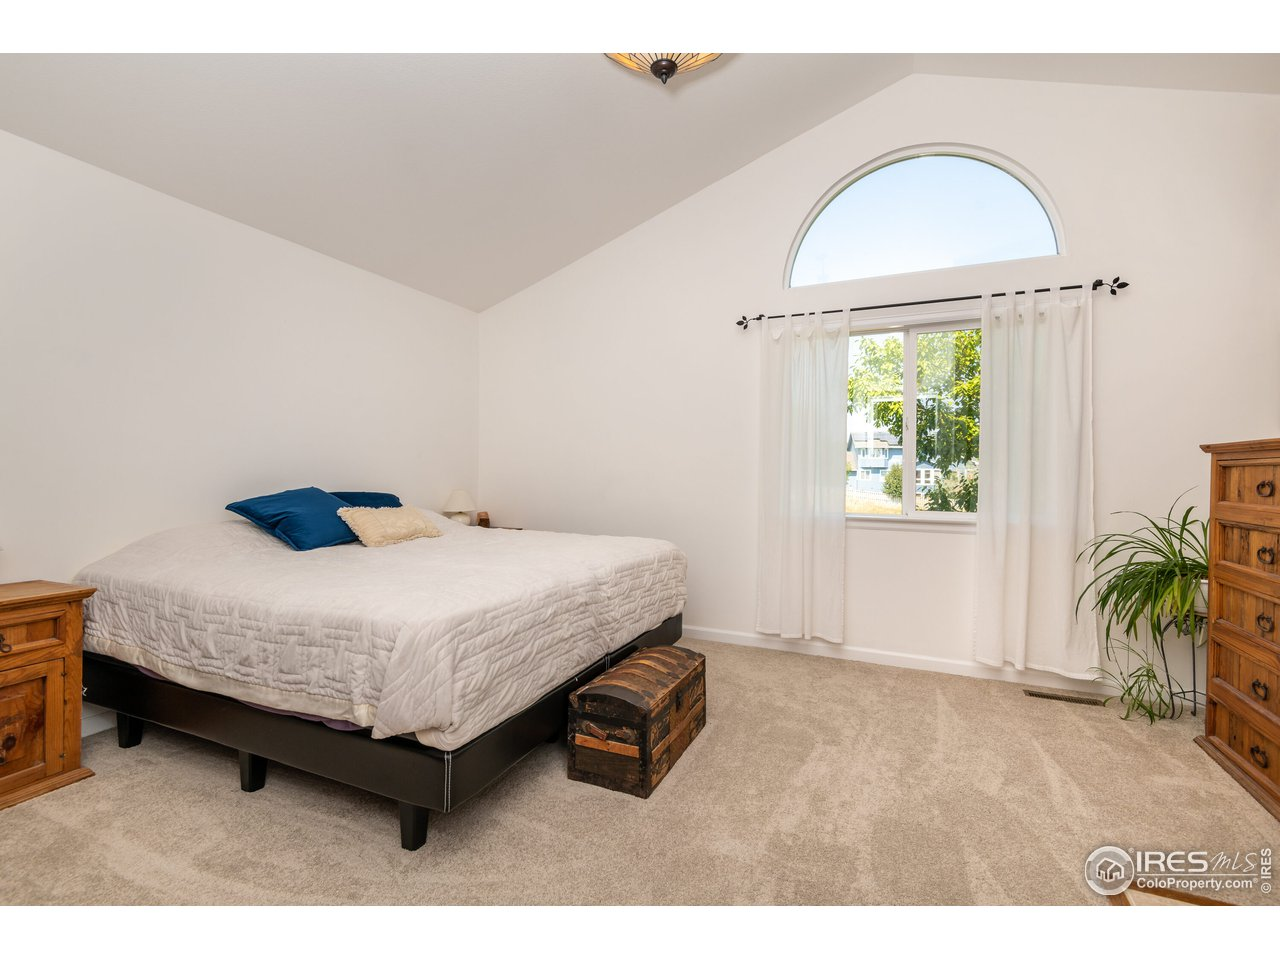 Primary Suite w/vaulted ceilings